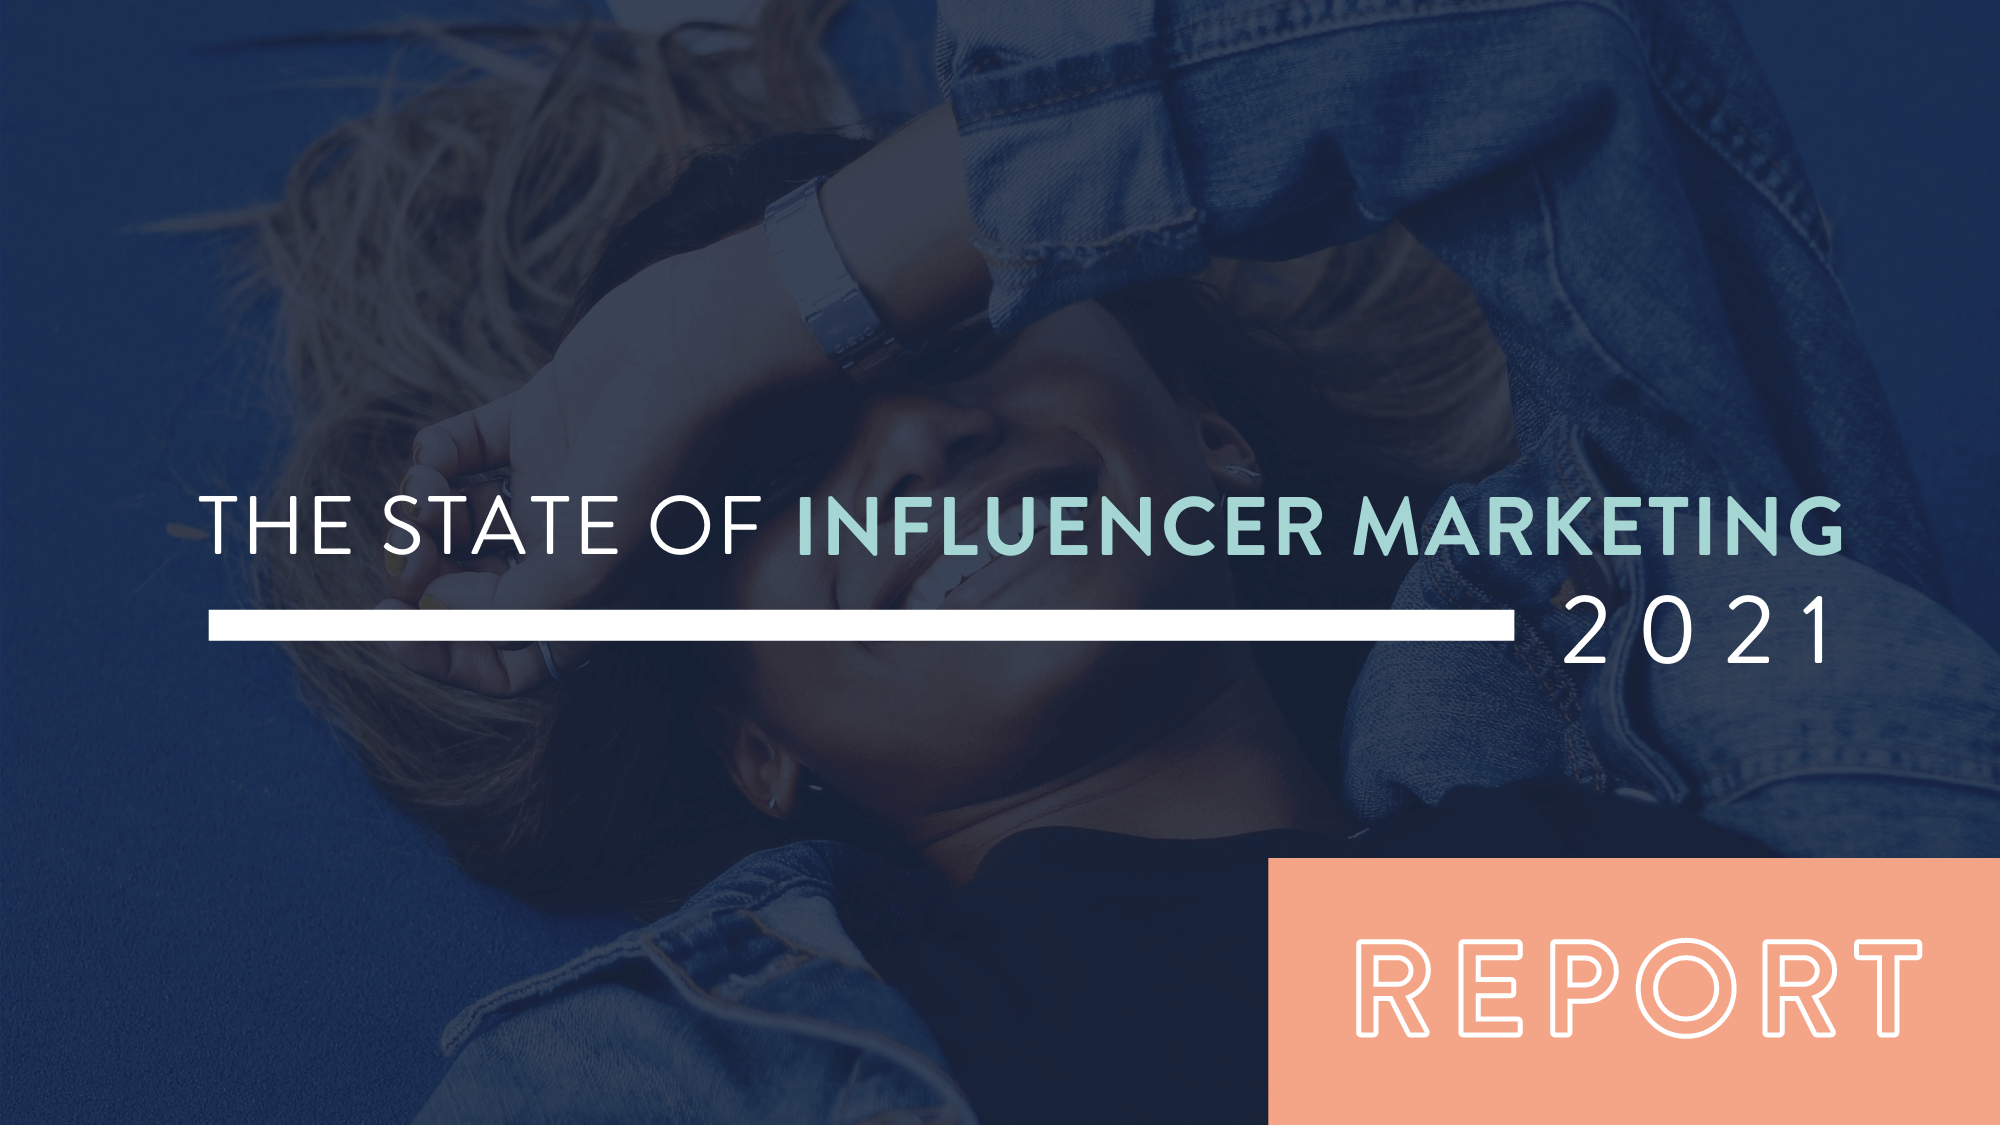 State of influencer marketing report 2021